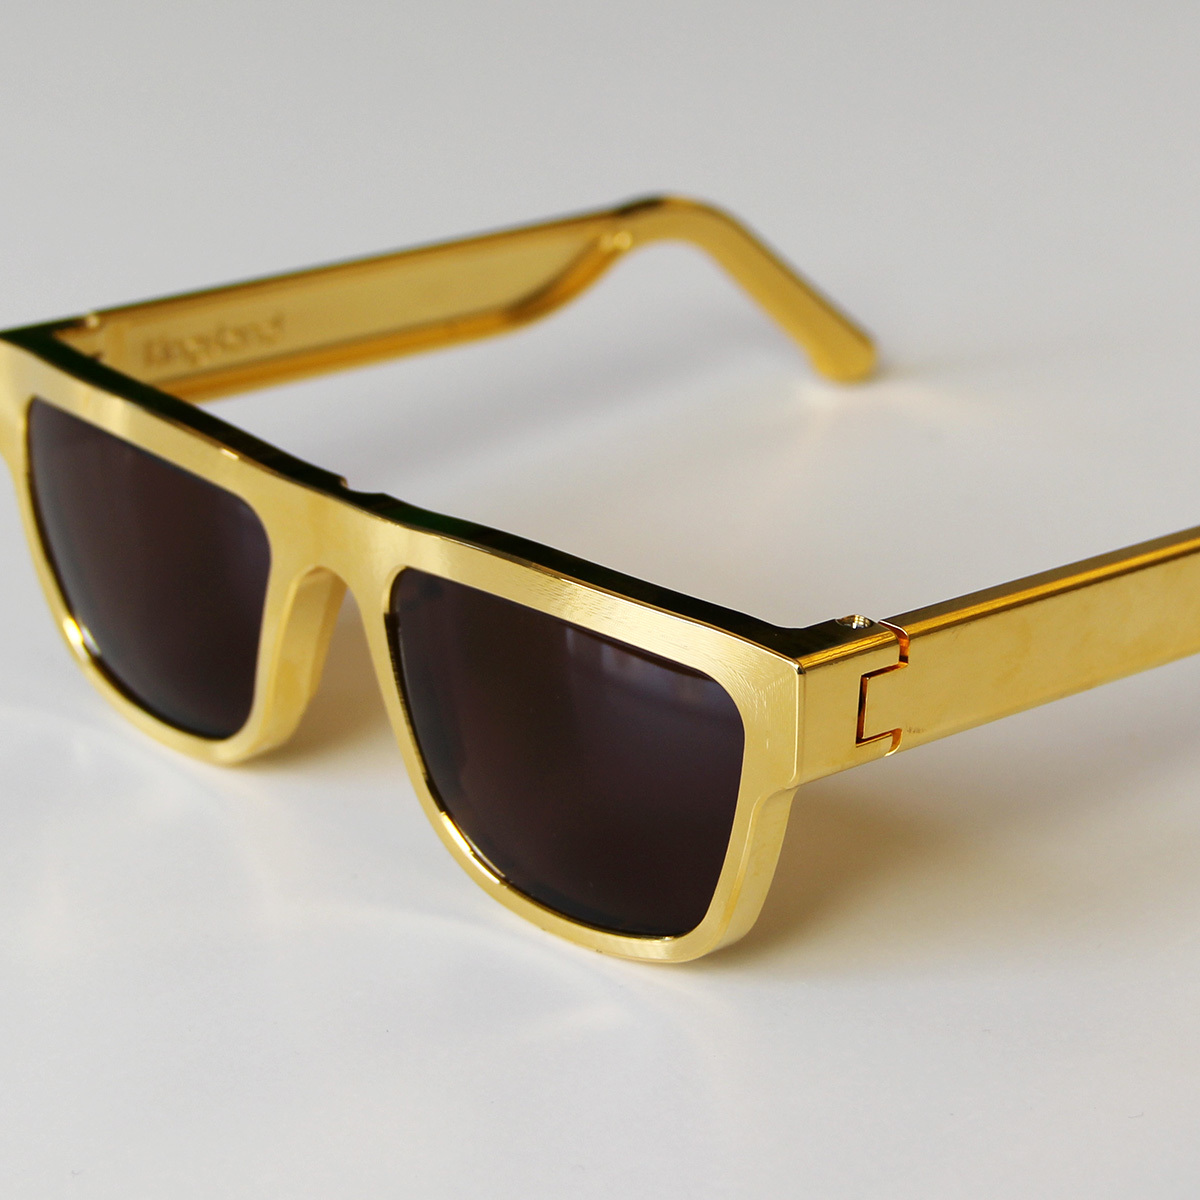 Gold-Plated Sunglasses - Cool Hunting